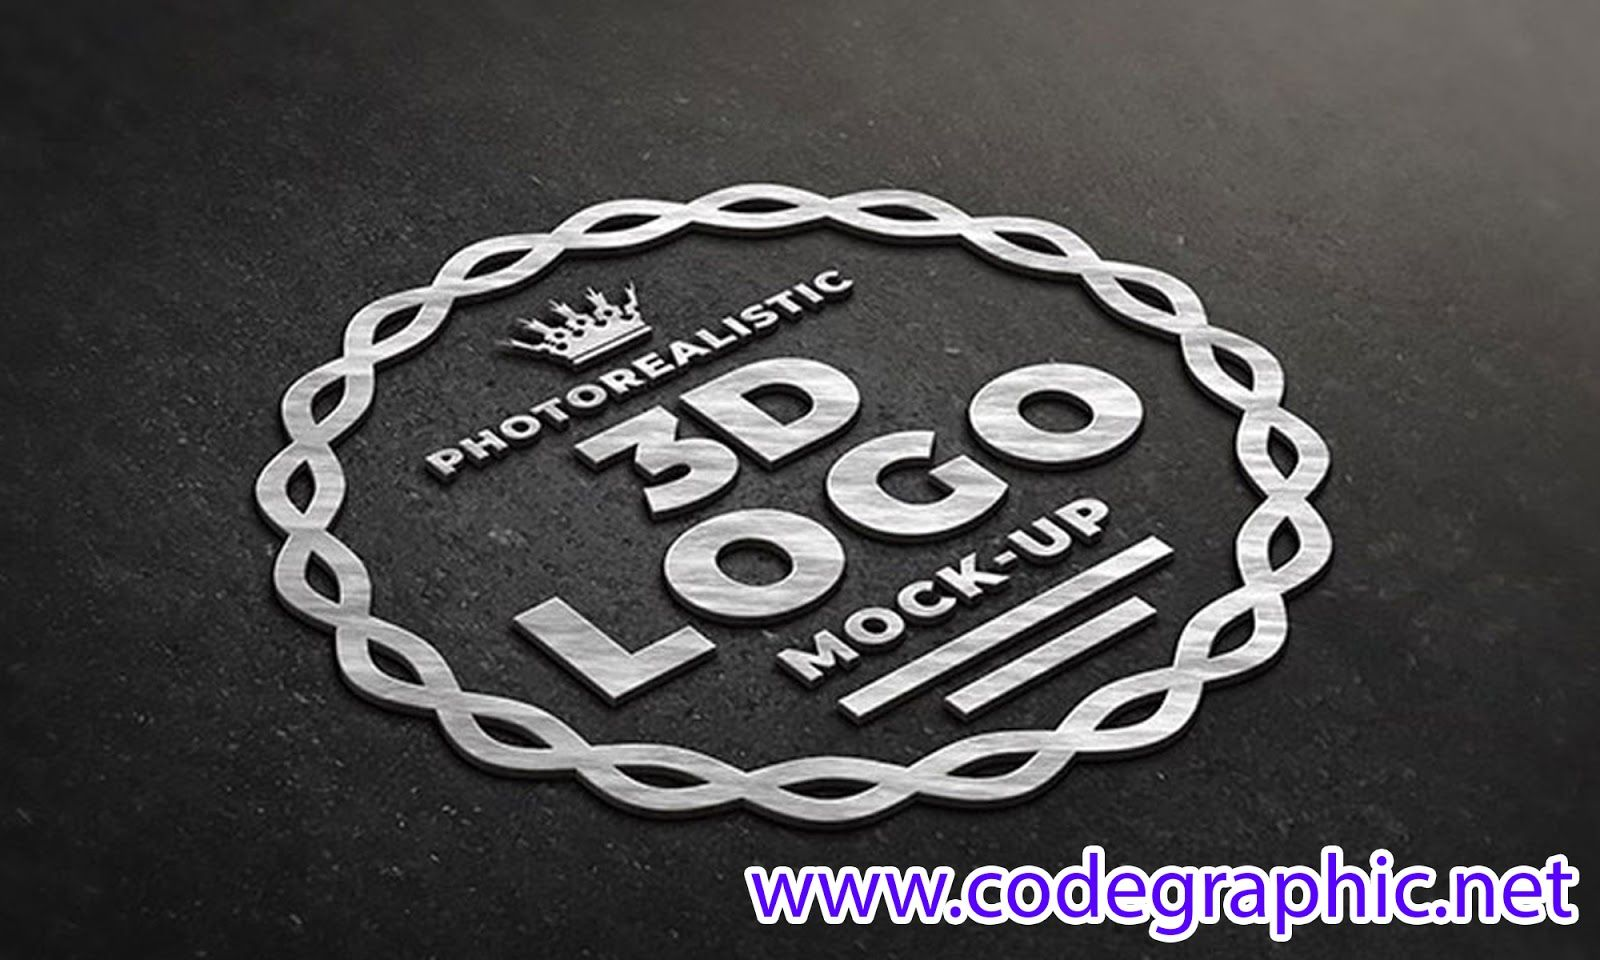 Free Download Photorealistic 3D Logo Mockup in PSD File